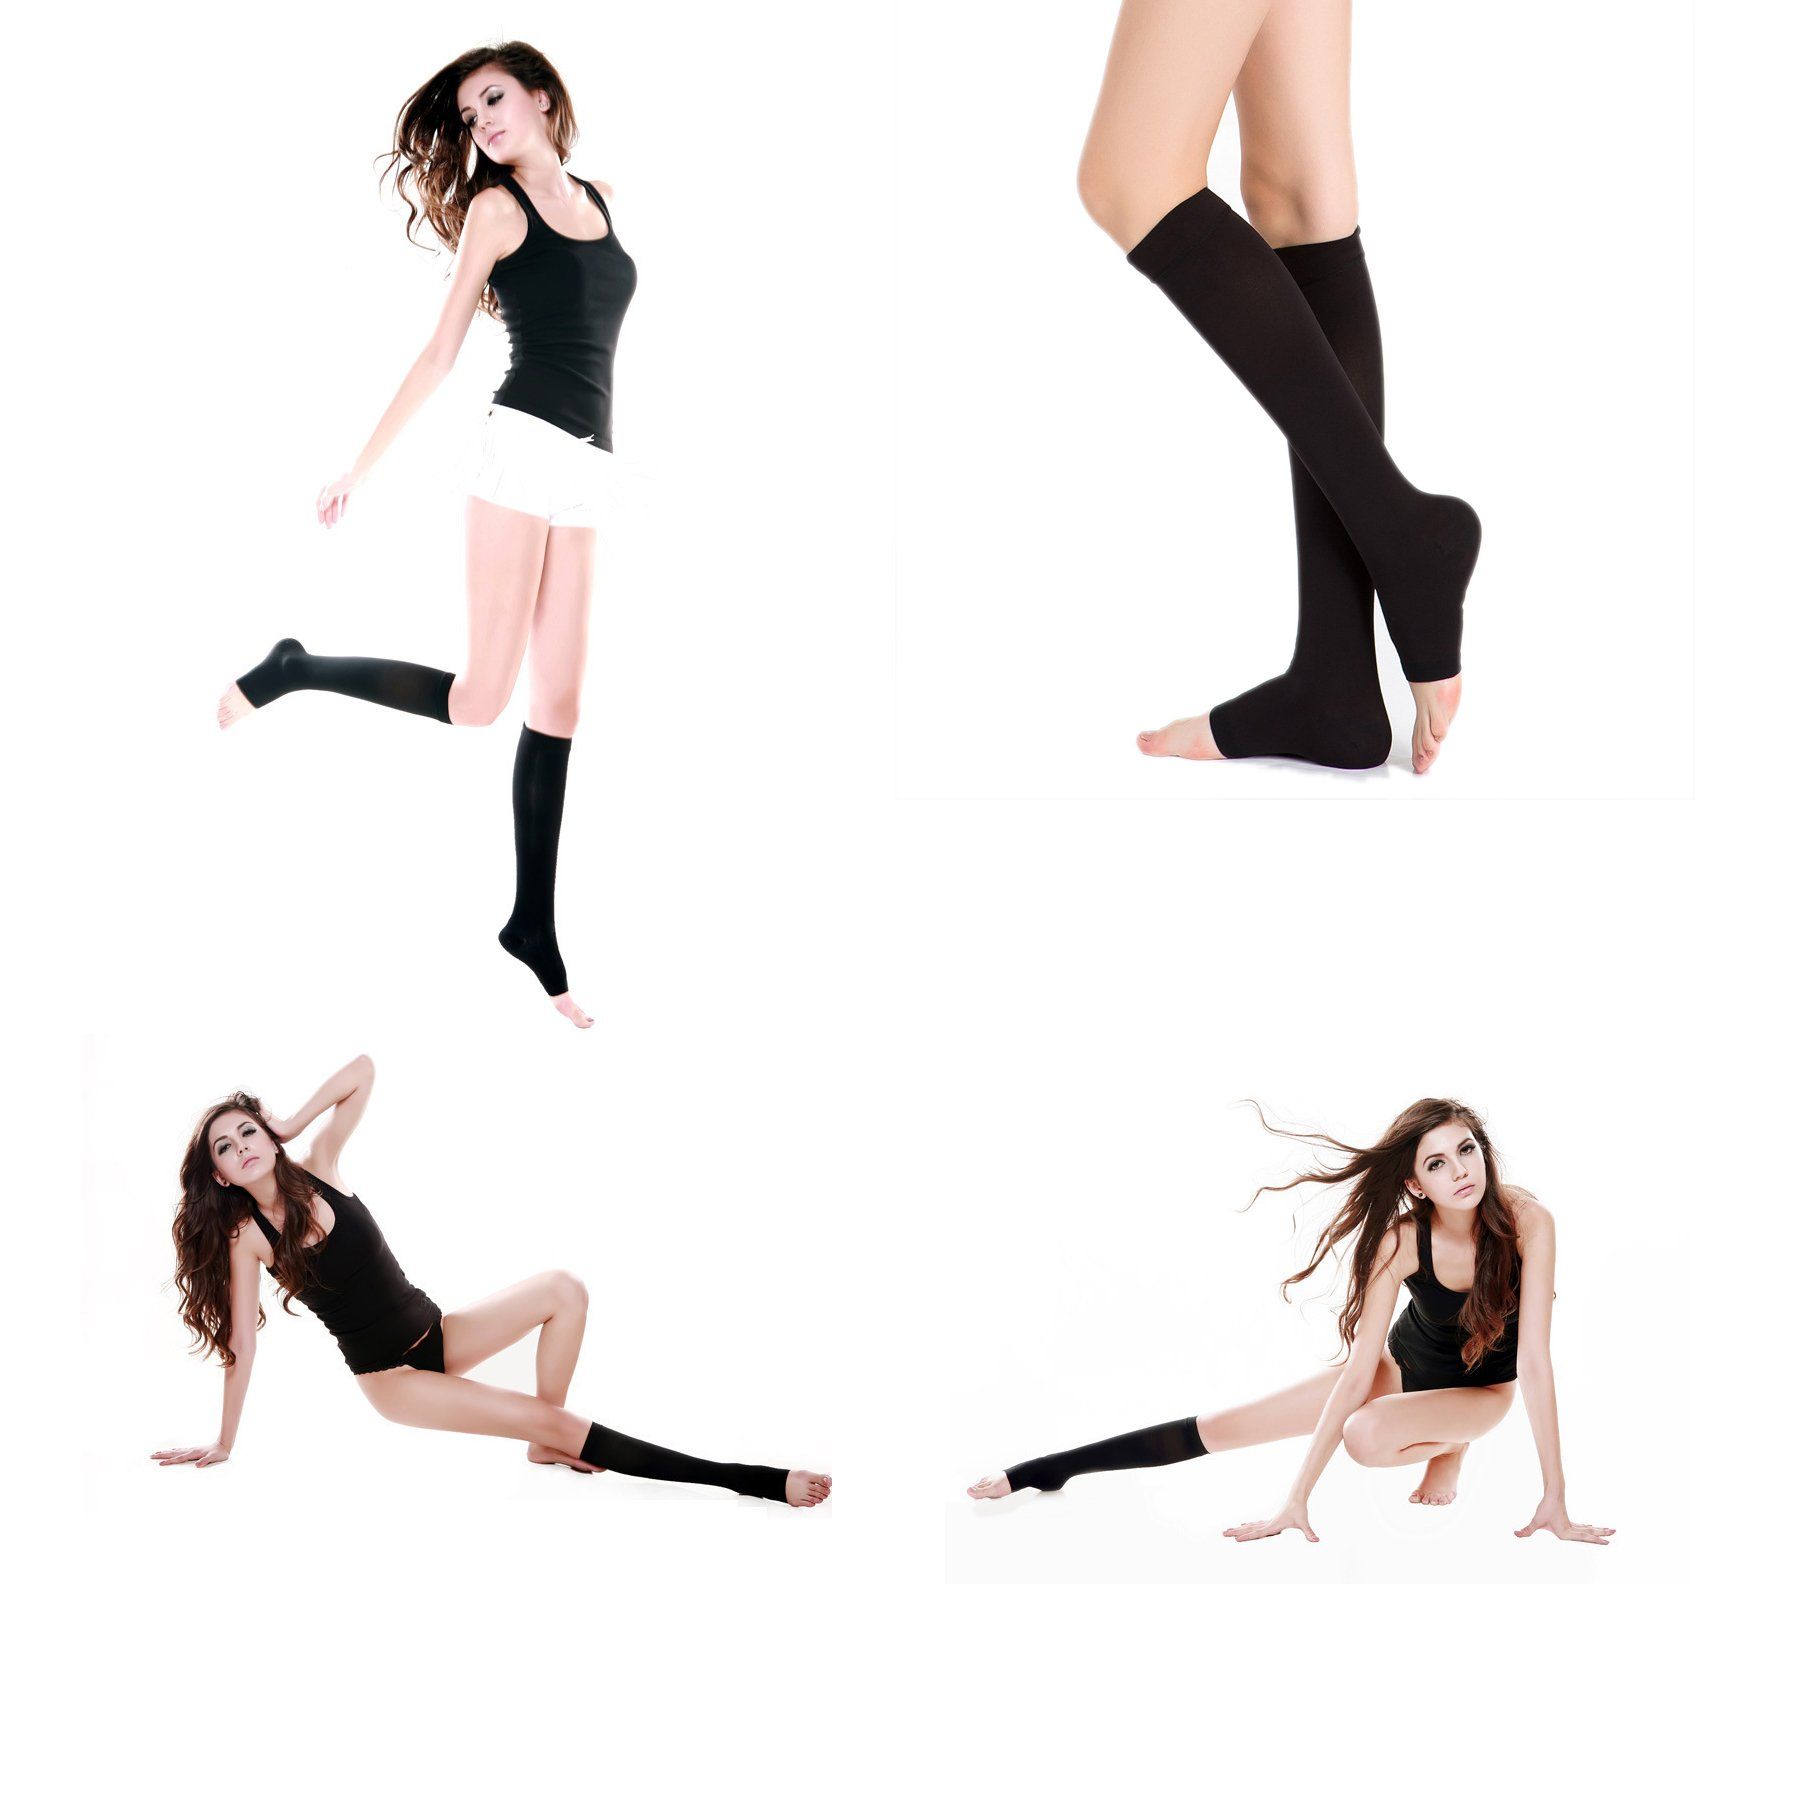 Knee High Compression Stockings, Firm Support 15-25mmHg Opaque Maternity Pregnancy Compression Socks, Open-Toe, Ankle & Arch Support, Swelling, Varicose Veins, Edema, Spider Veins. 1 Pair Black,L